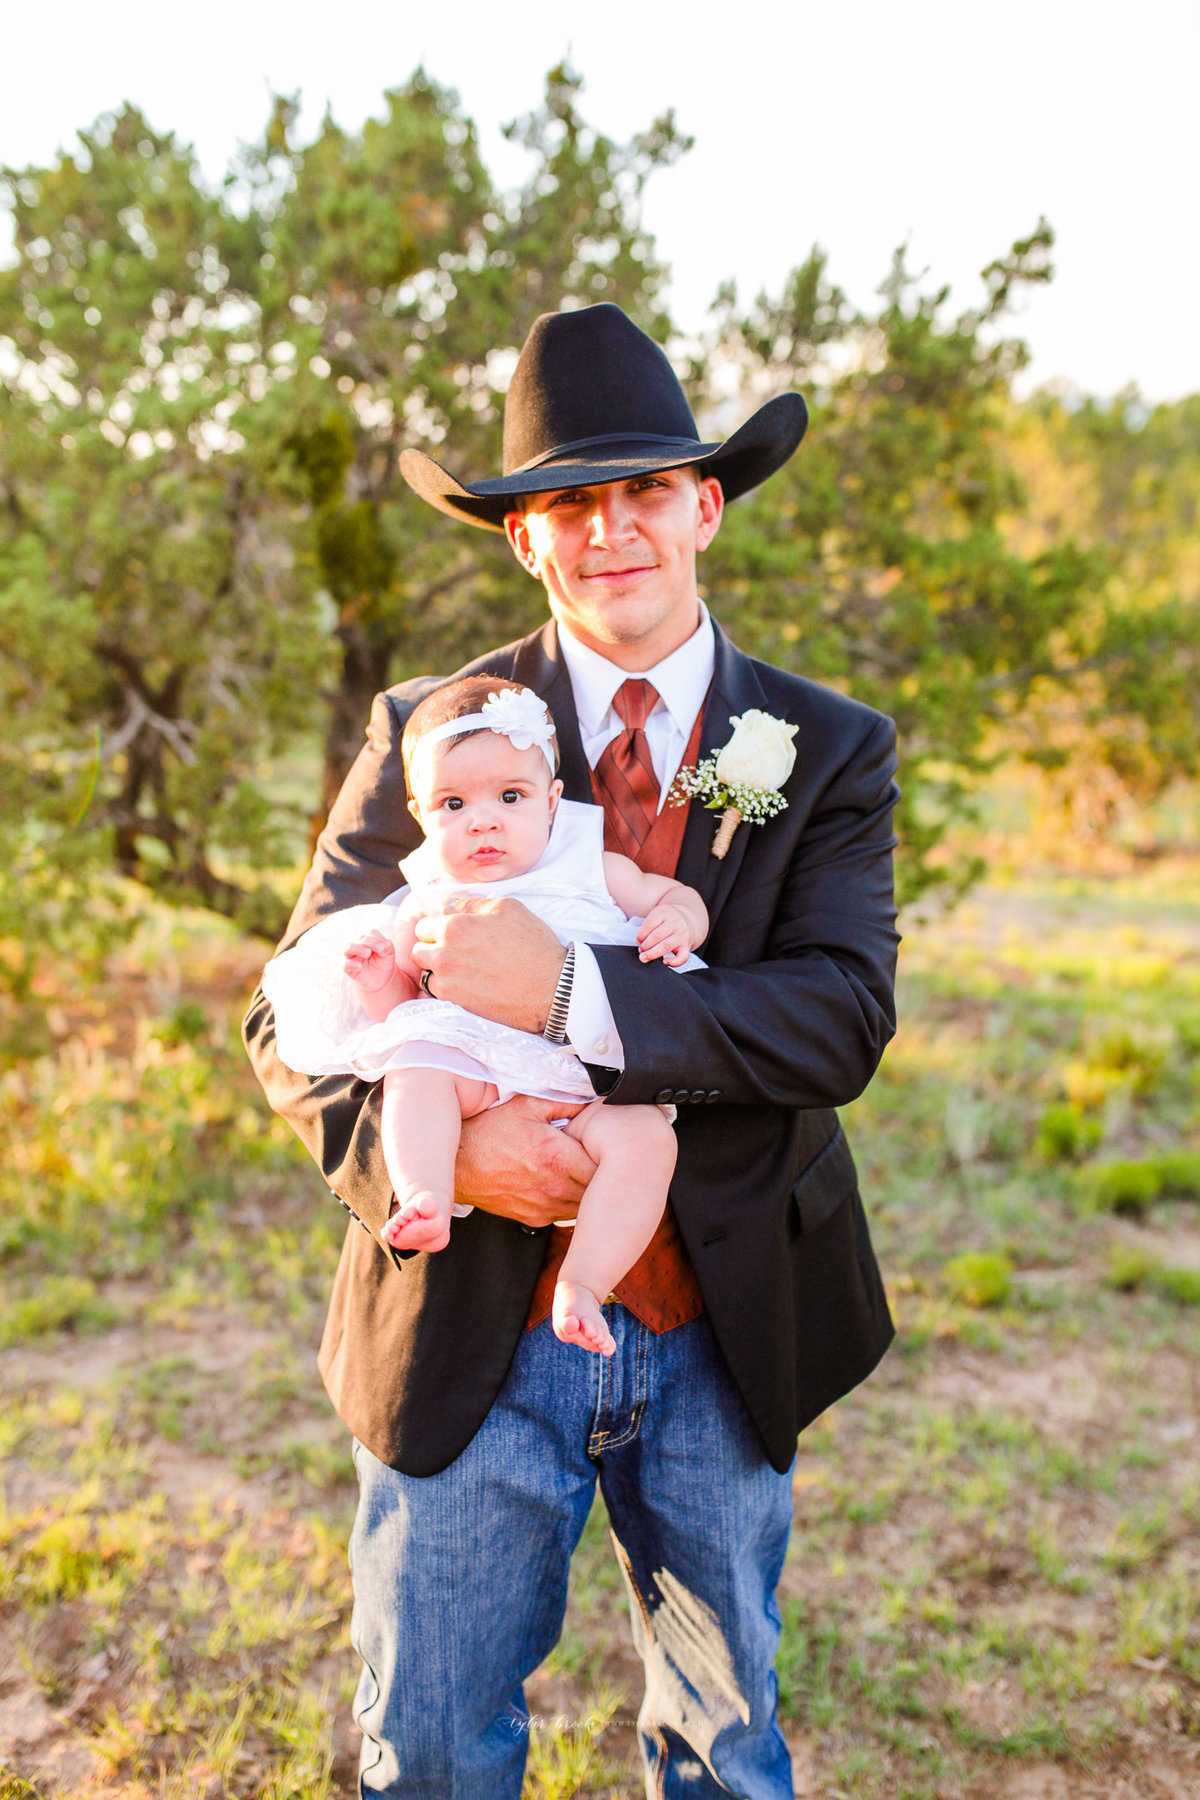 Edgewood-New-Mexico_Country-Wedding-Photographer_www.tylerbrooke.com_Kate-Kauffman-32-of-35